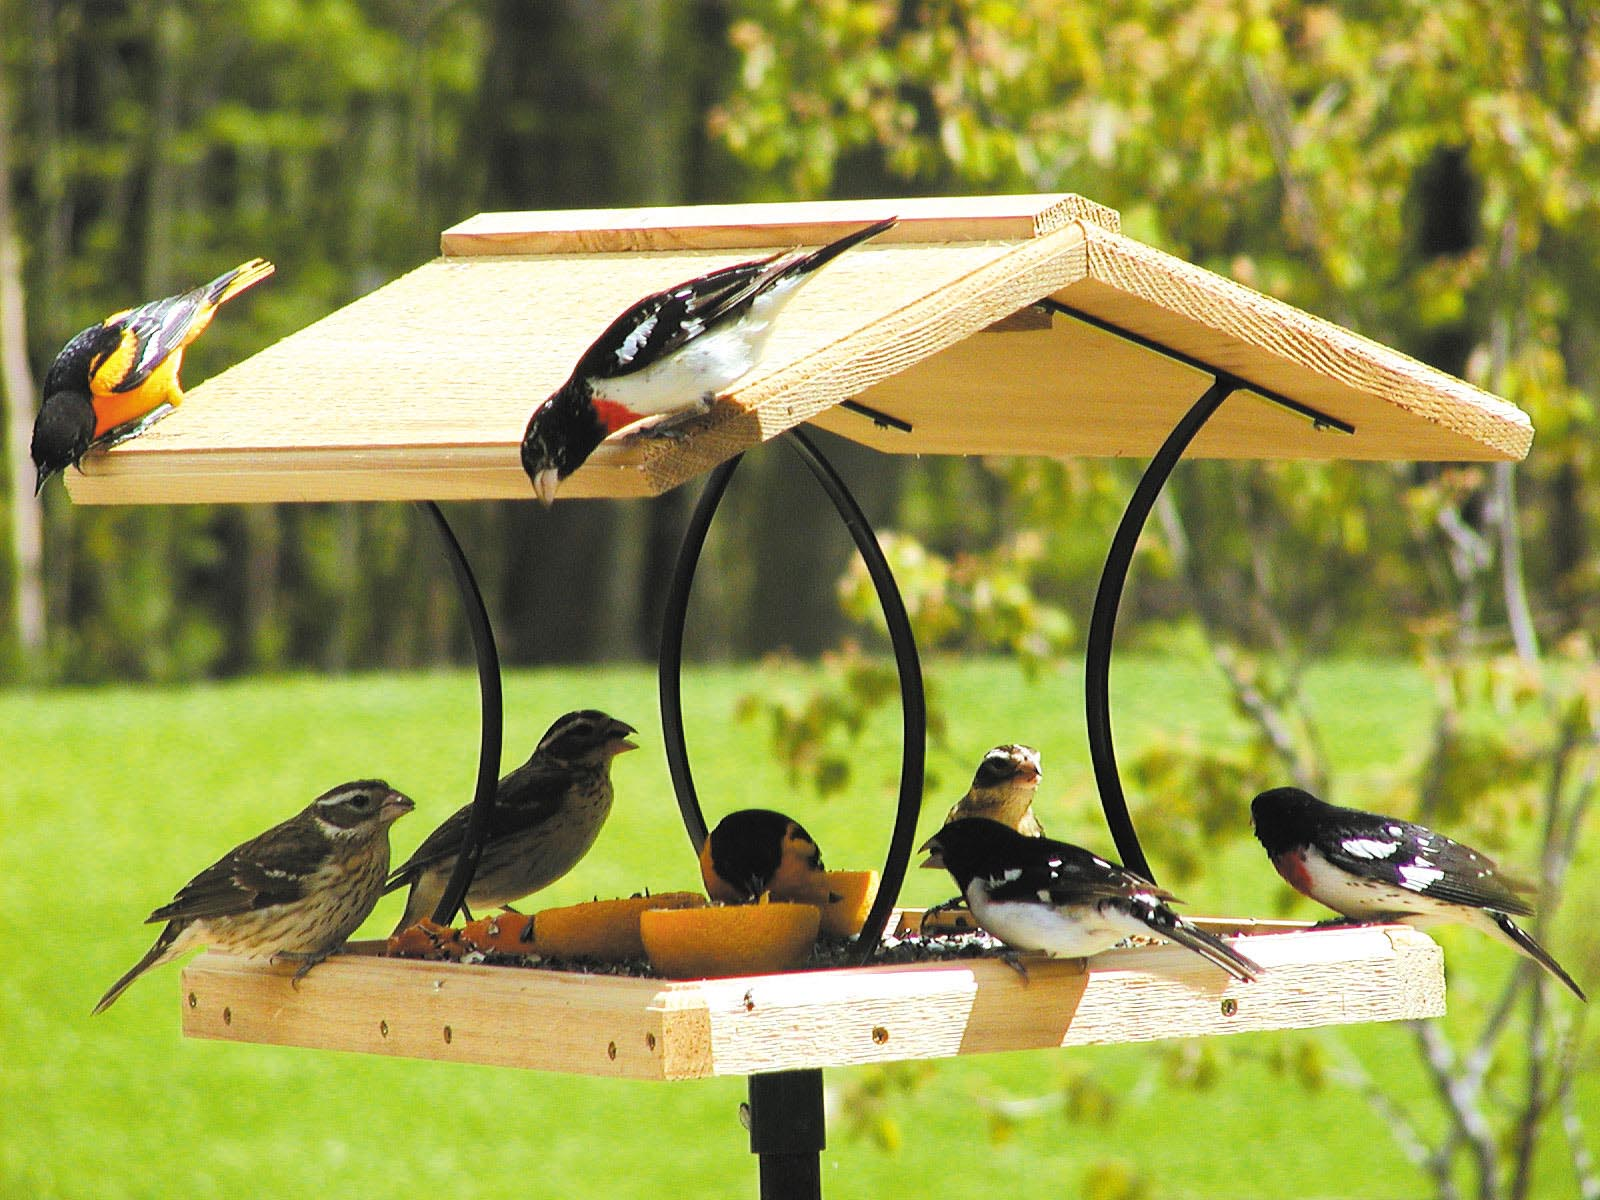 Best Type of Bird Feeder for Finches